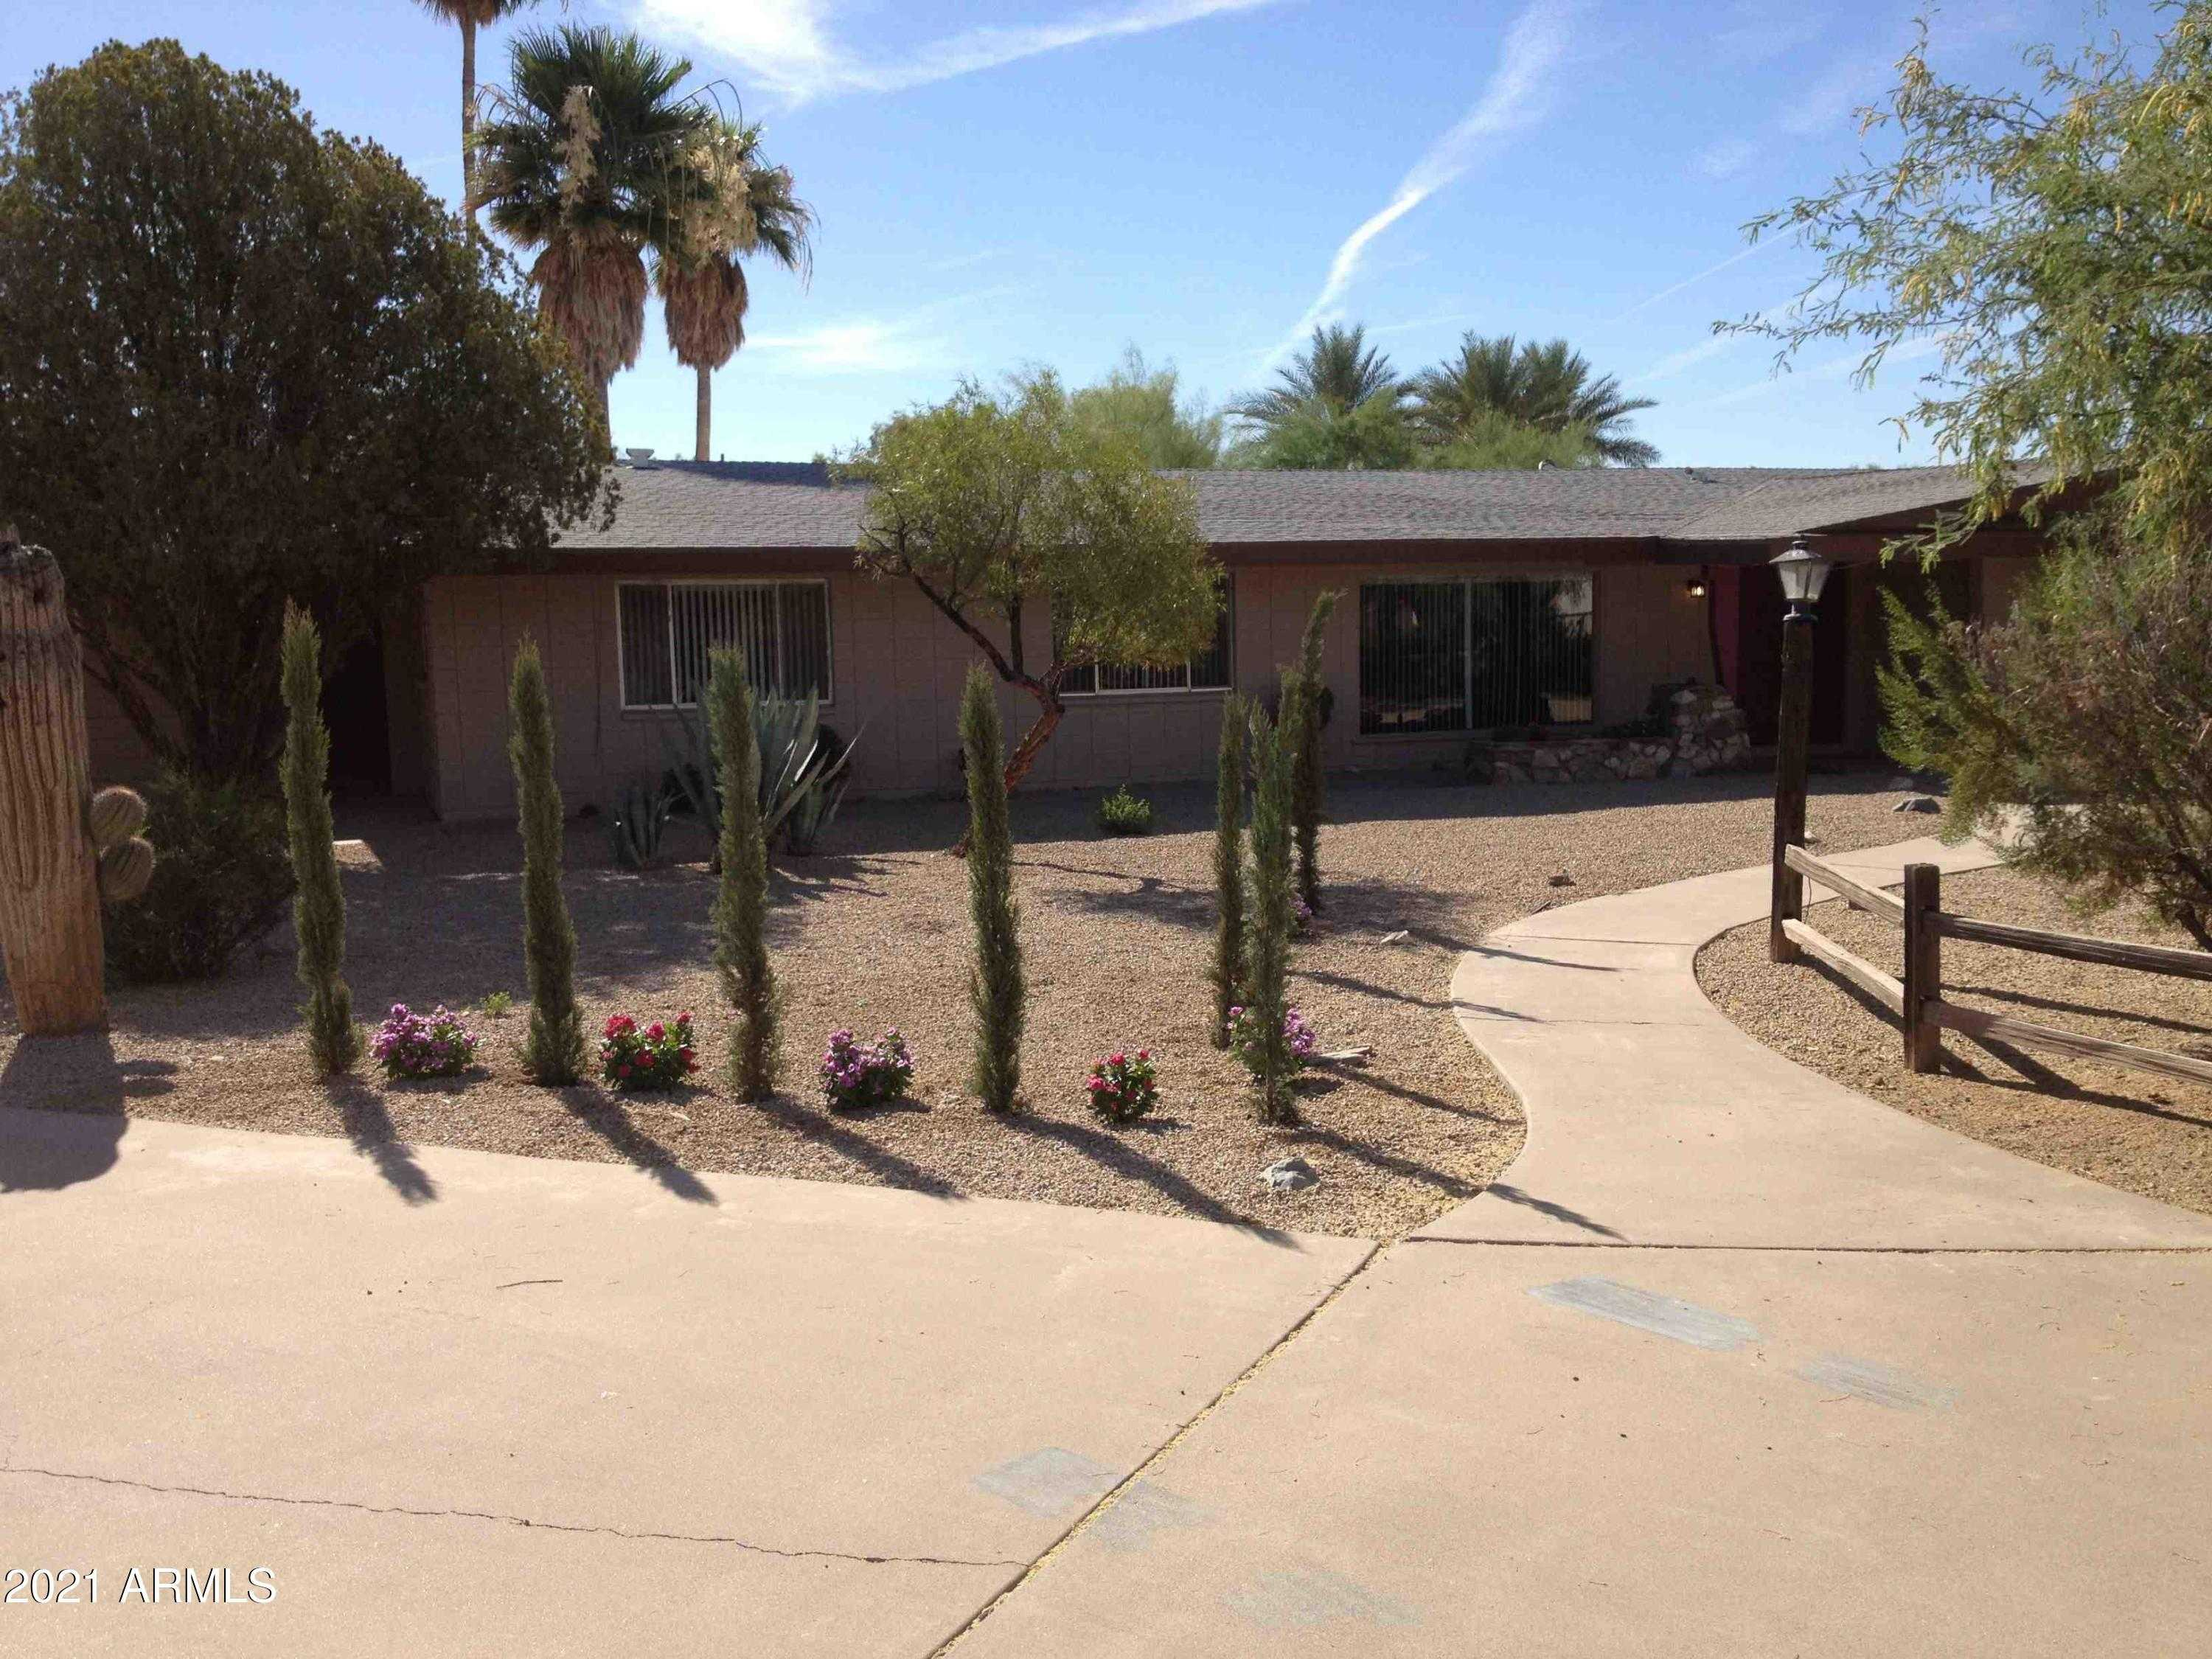 $1,925,000 - 5Br/3Ba - Home for Sale in Salida Del Sol, Paradise Valley